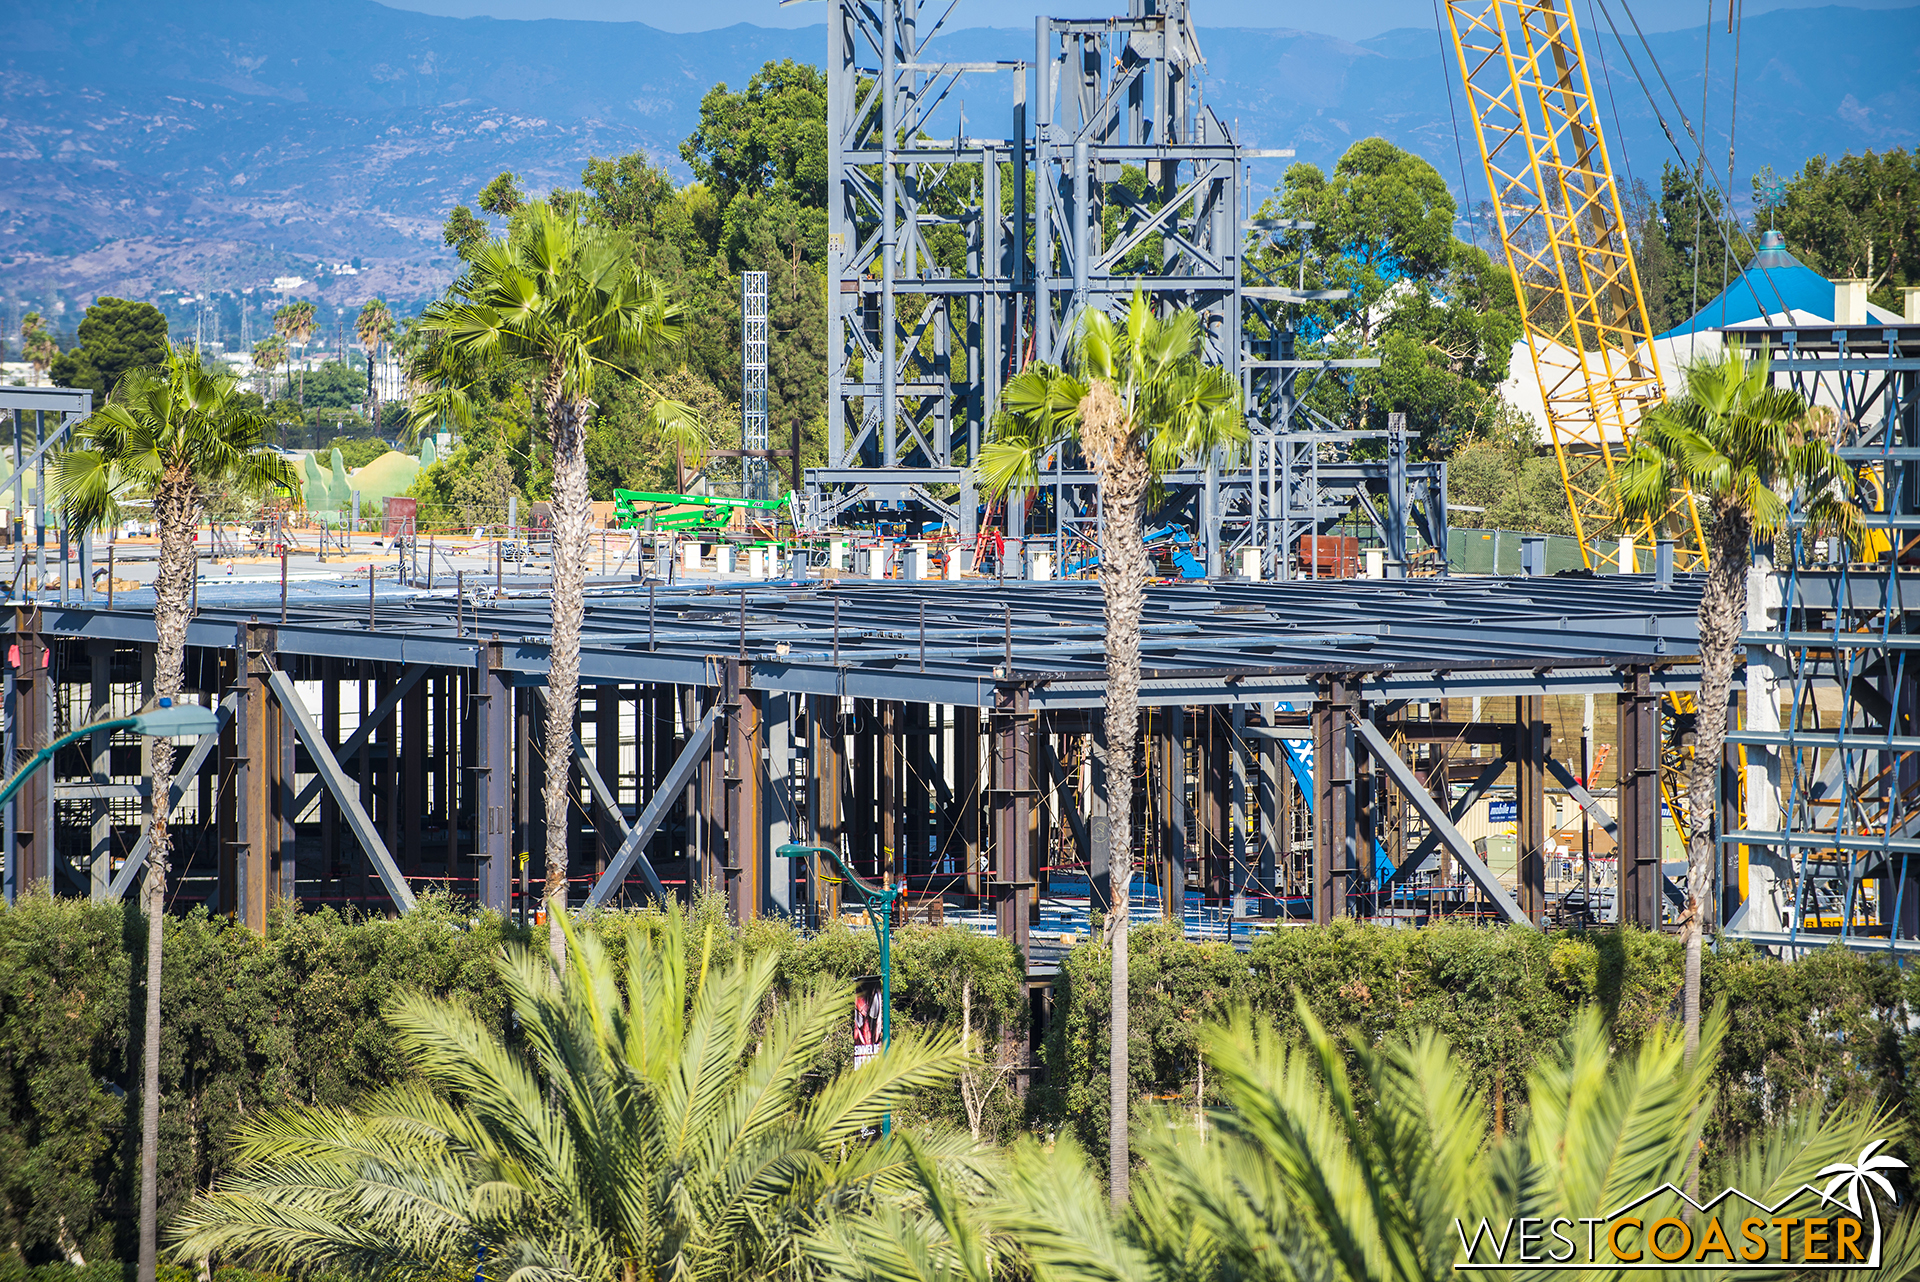 The steel framing for those future mountains has grown.  Should be fun to see how far along this eventually stretches.